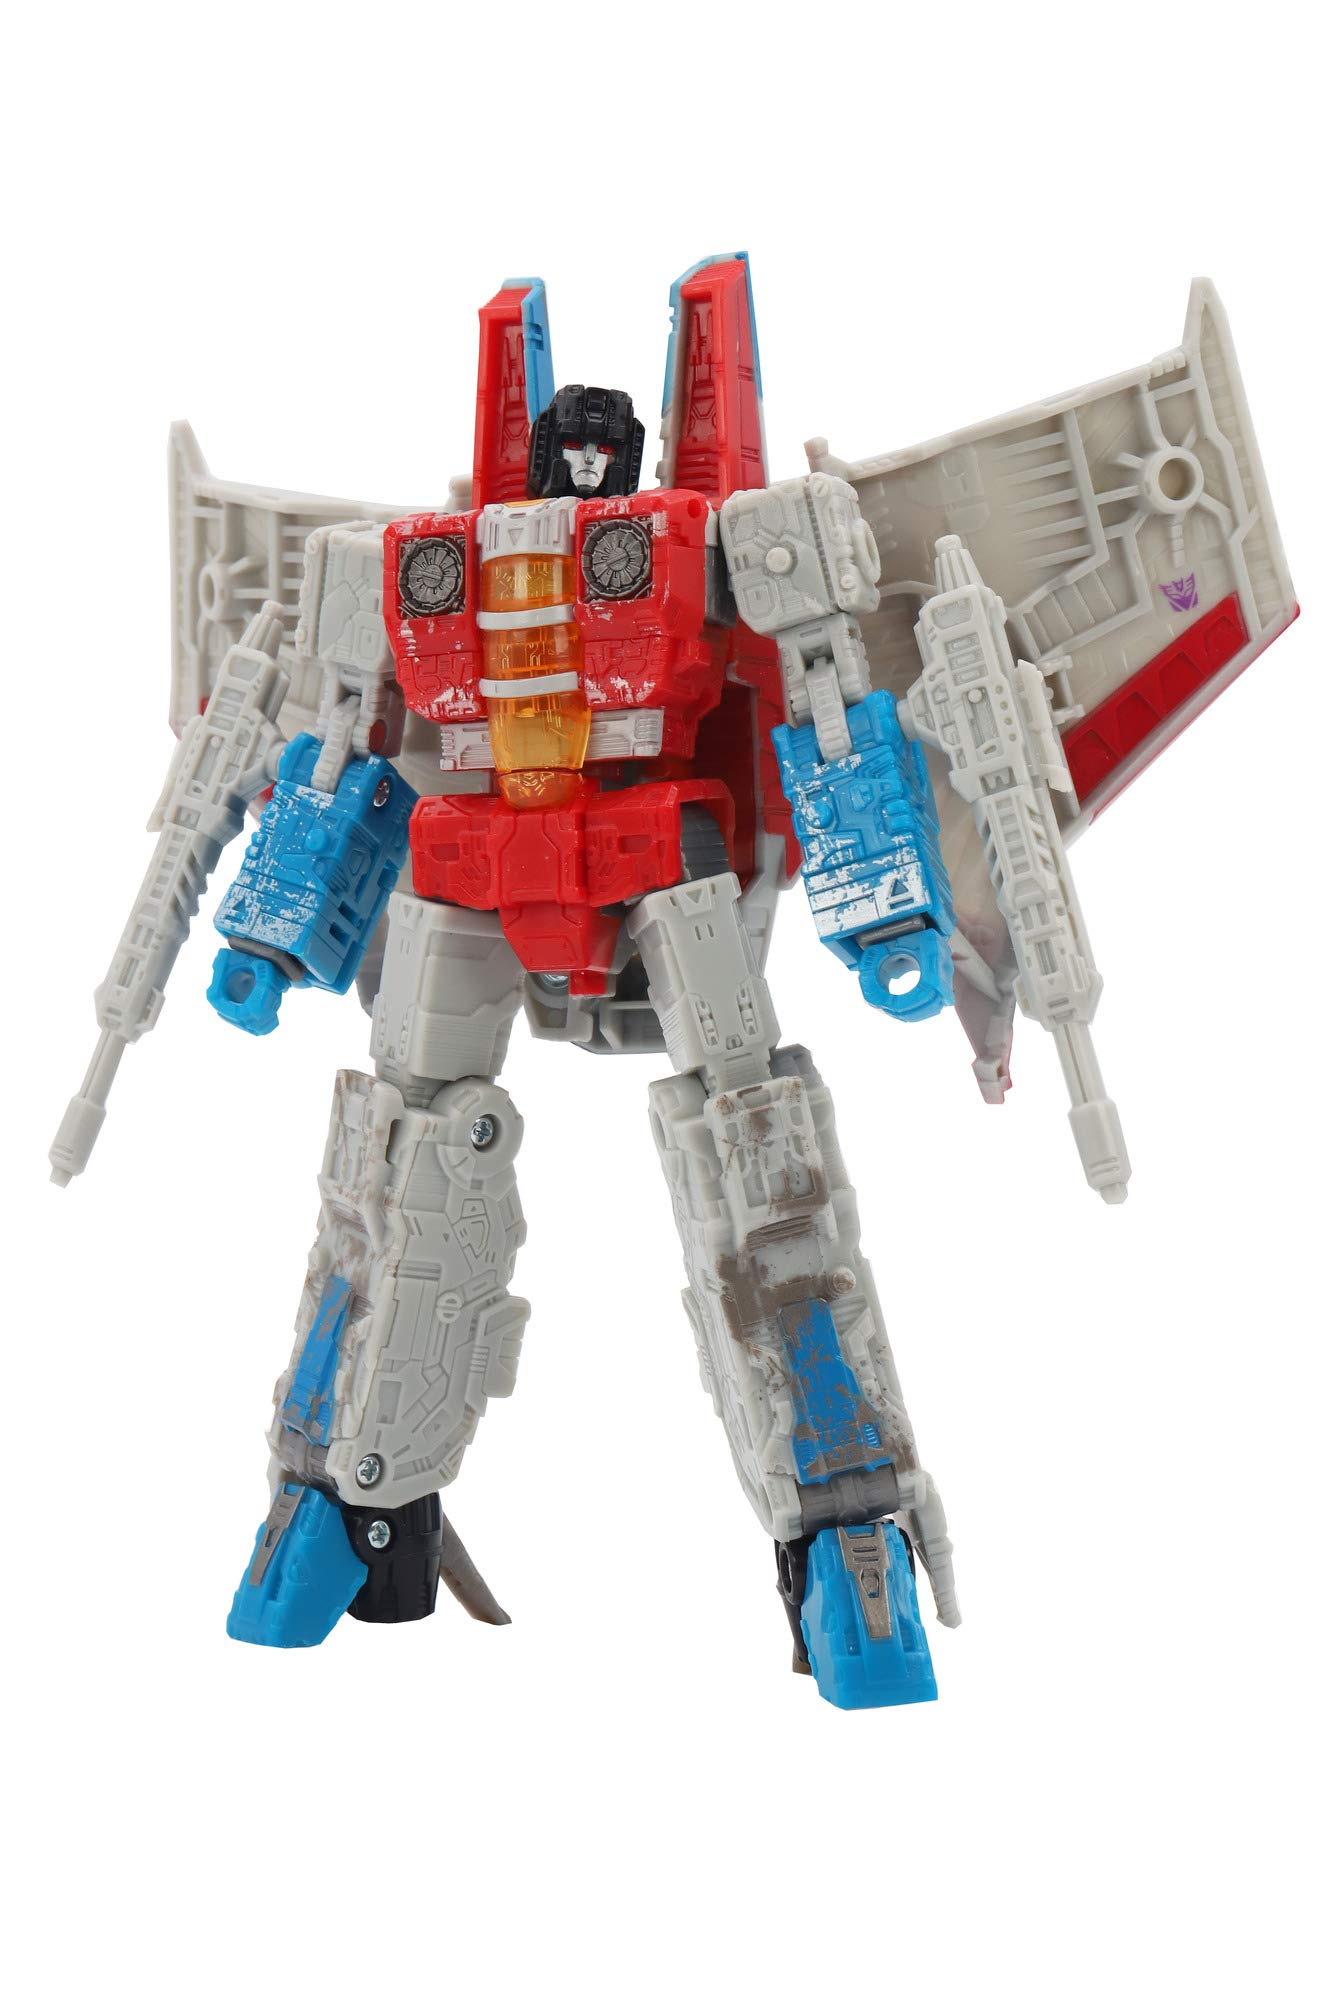 Transformers Toys Generations War for Cybertron Voyager Wfc-S24 Starscream Action Figure - Siege Chapter - Adults & Kids Ages 8 & Up, 7'' by Transformers (Image #4)